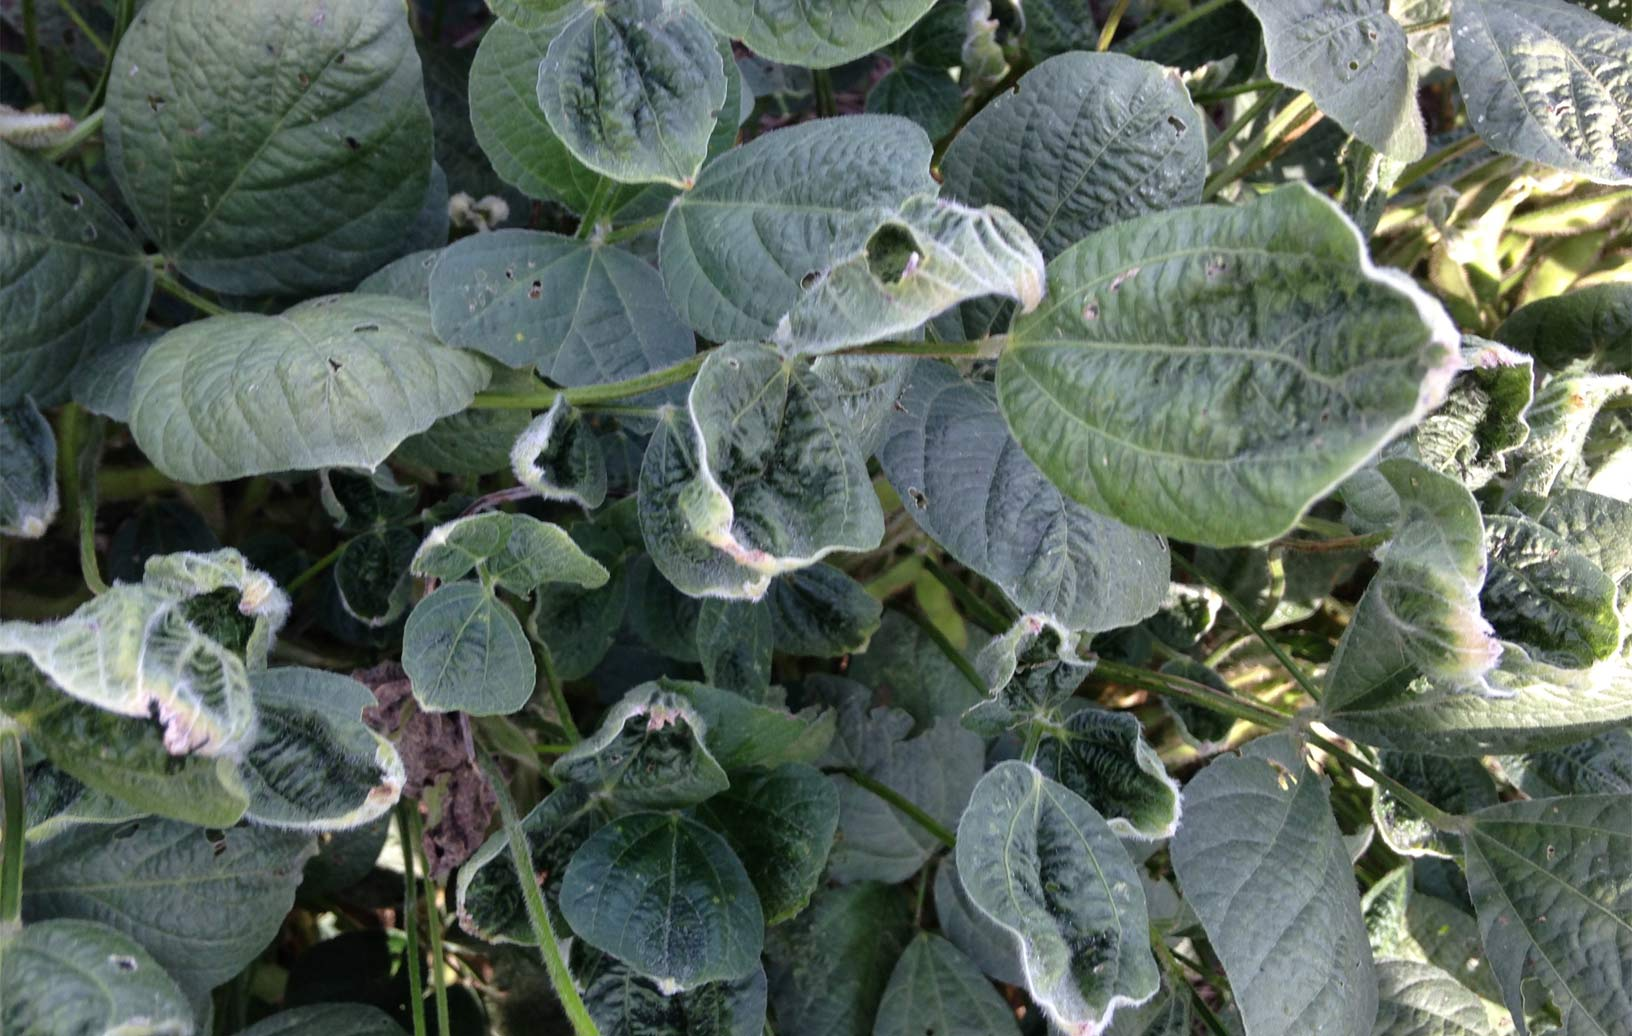 Dicamba damaged soybean leaves